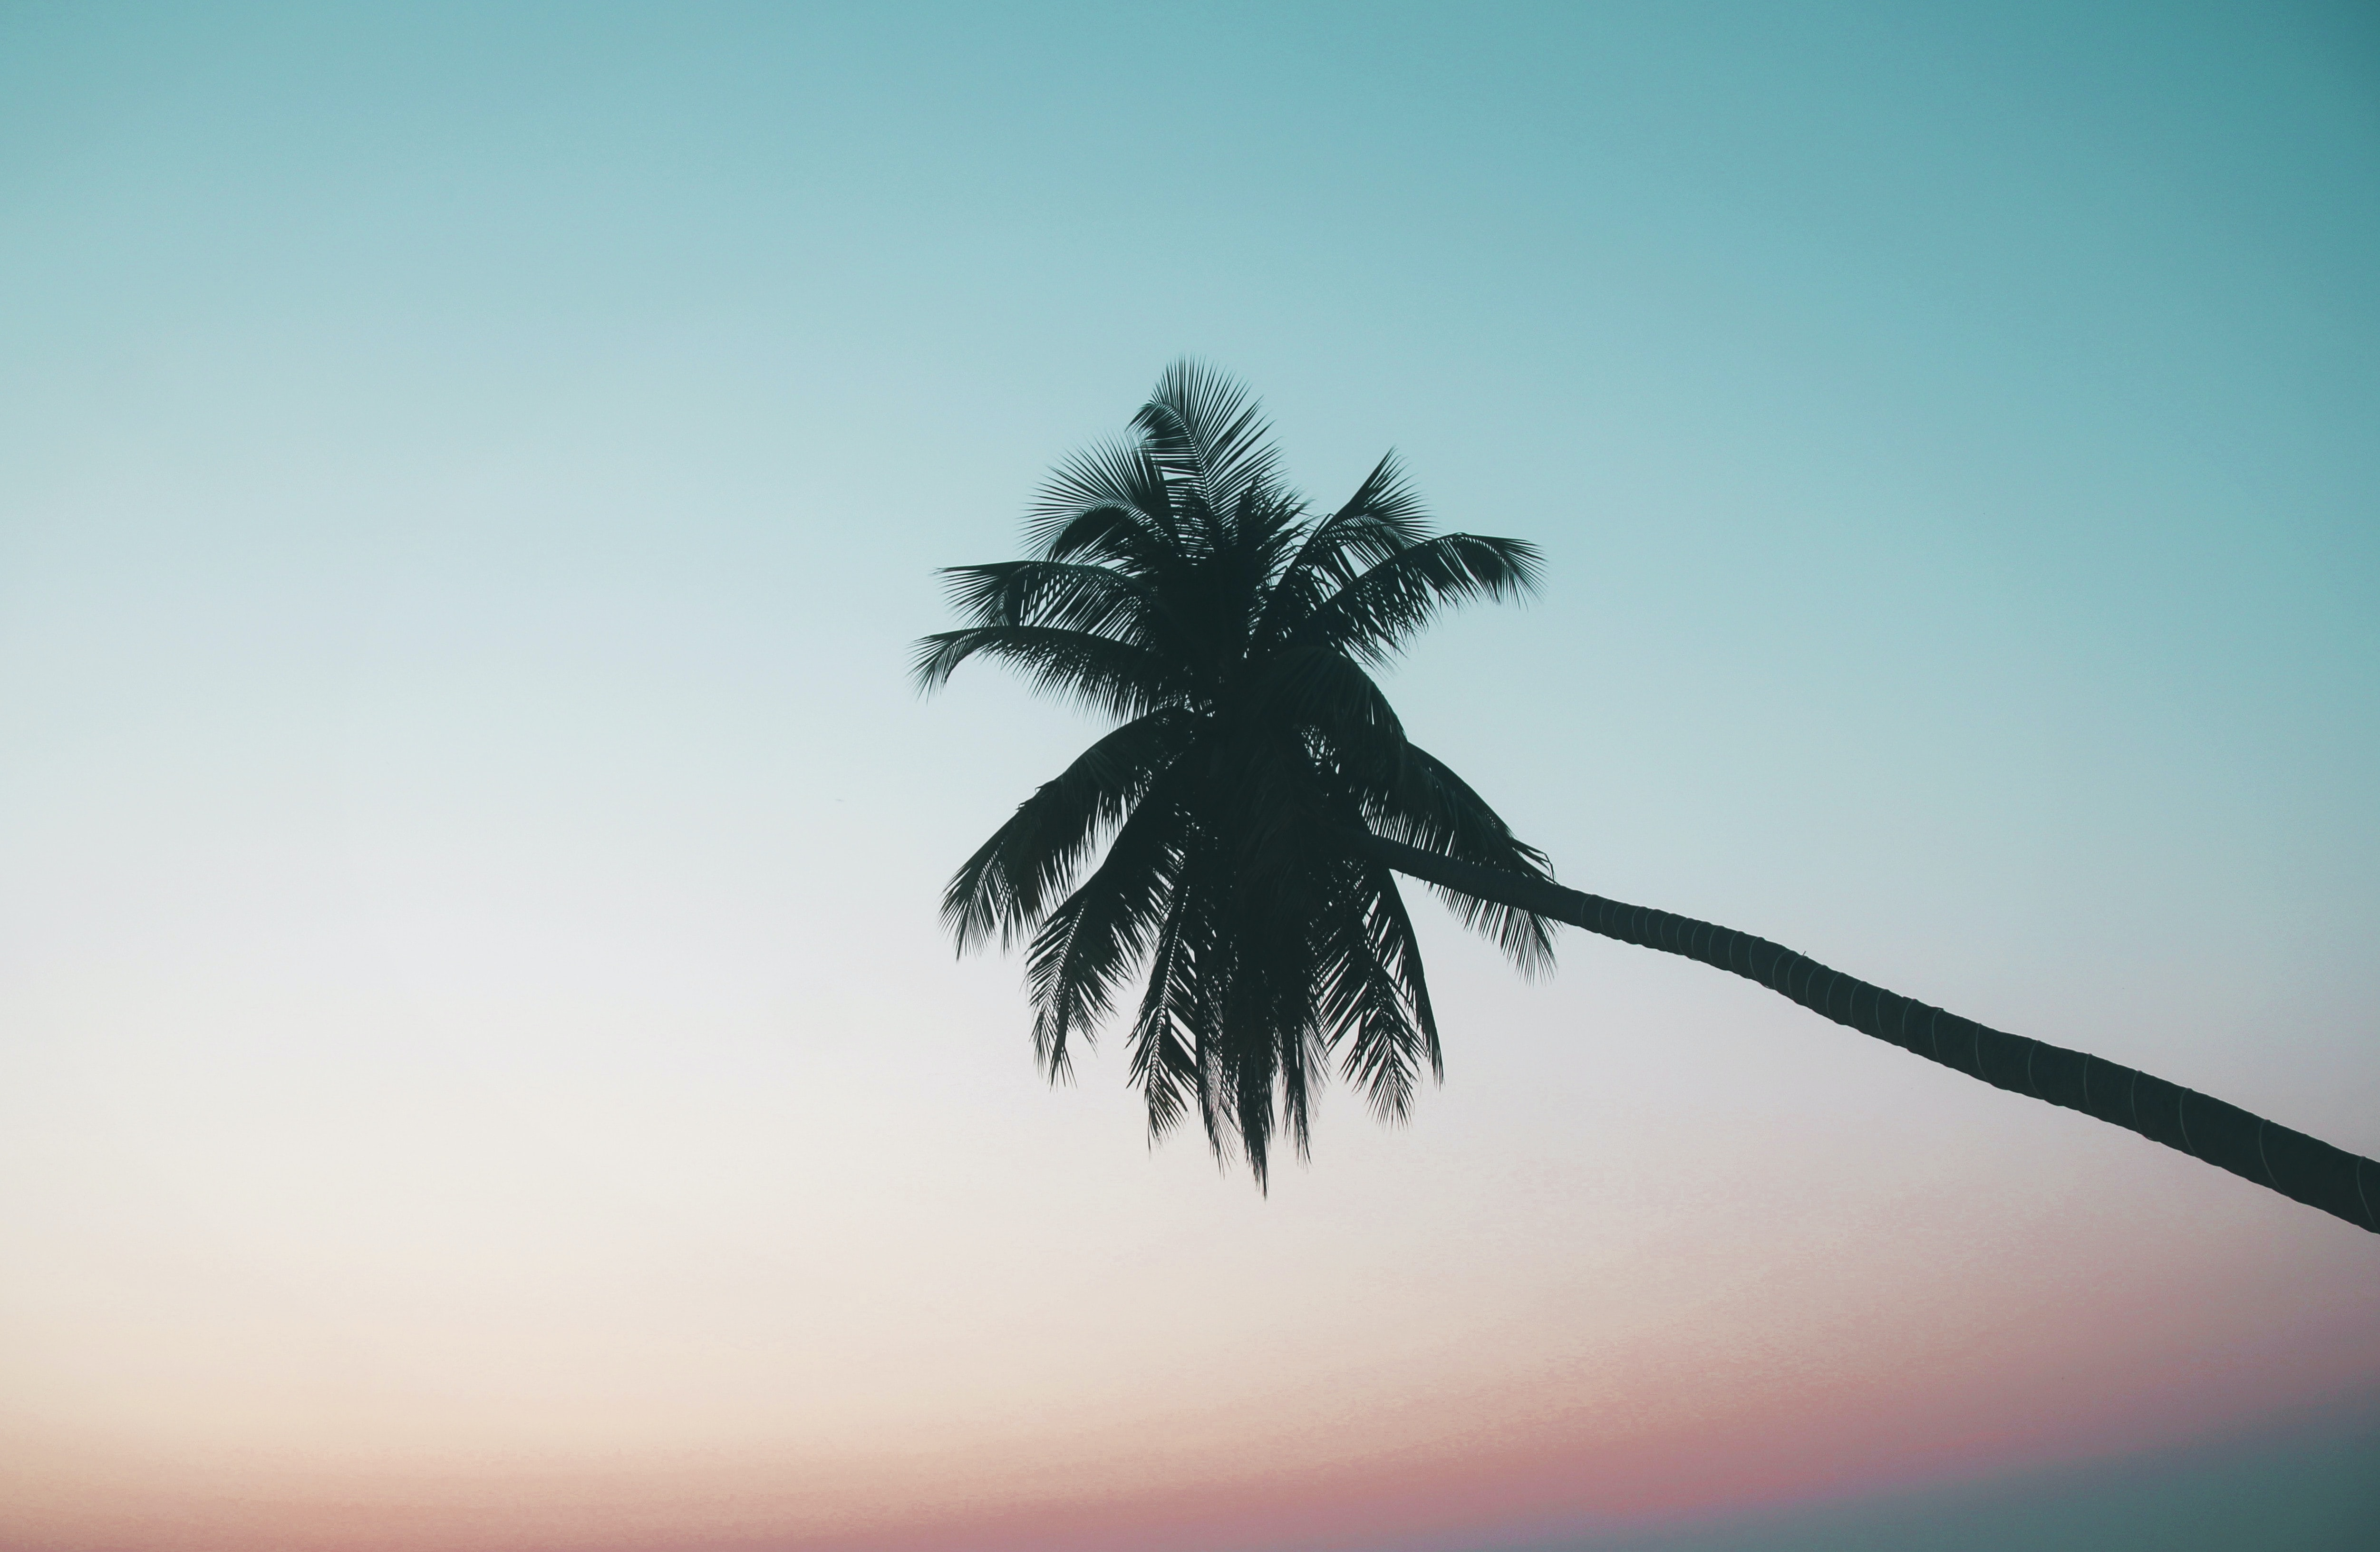 silhouette photography of coconut tree